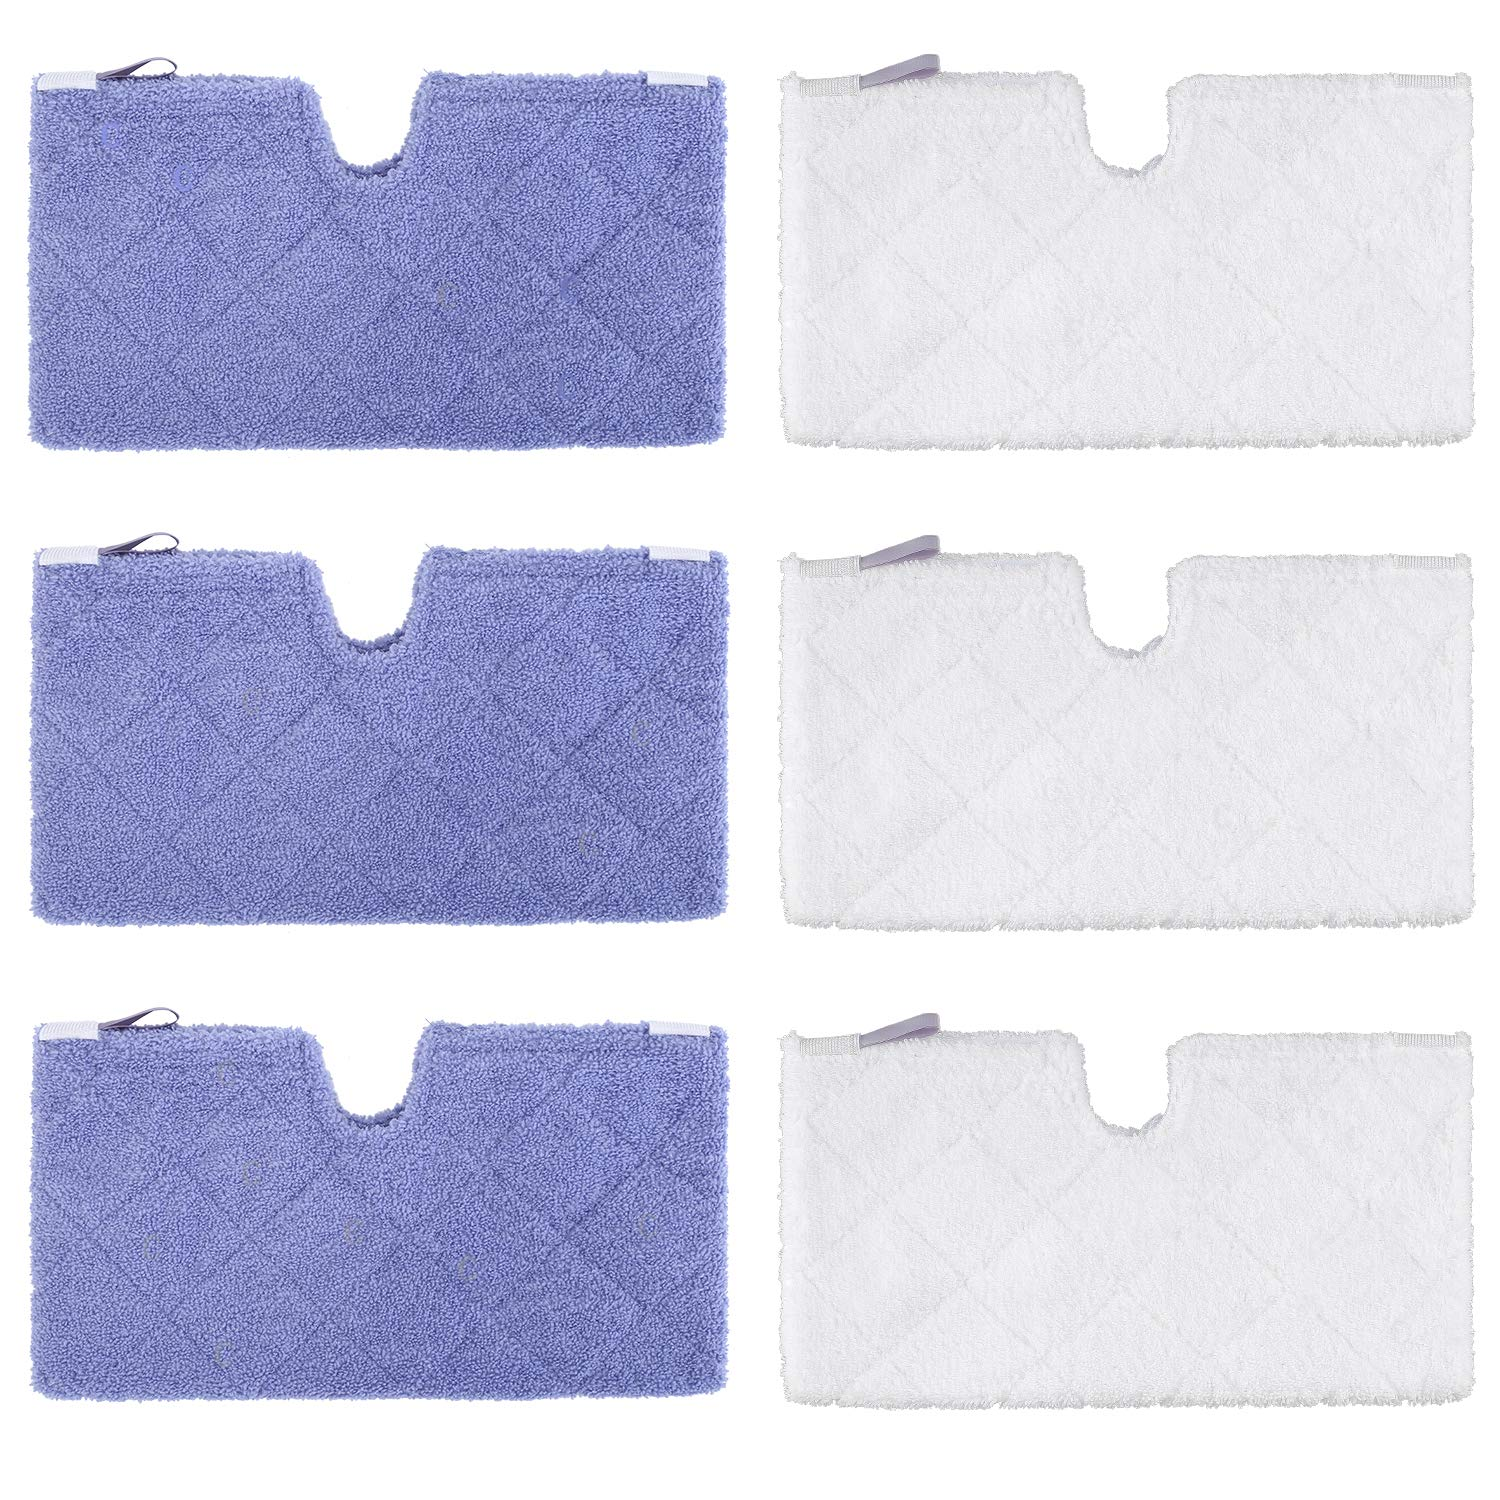 YISSVIC Steam Pocket Mop Pads 6 Pack Compatible Replacement Mop Pads for Shark Euro Pro S3501 S3601 S3901 Purple and White